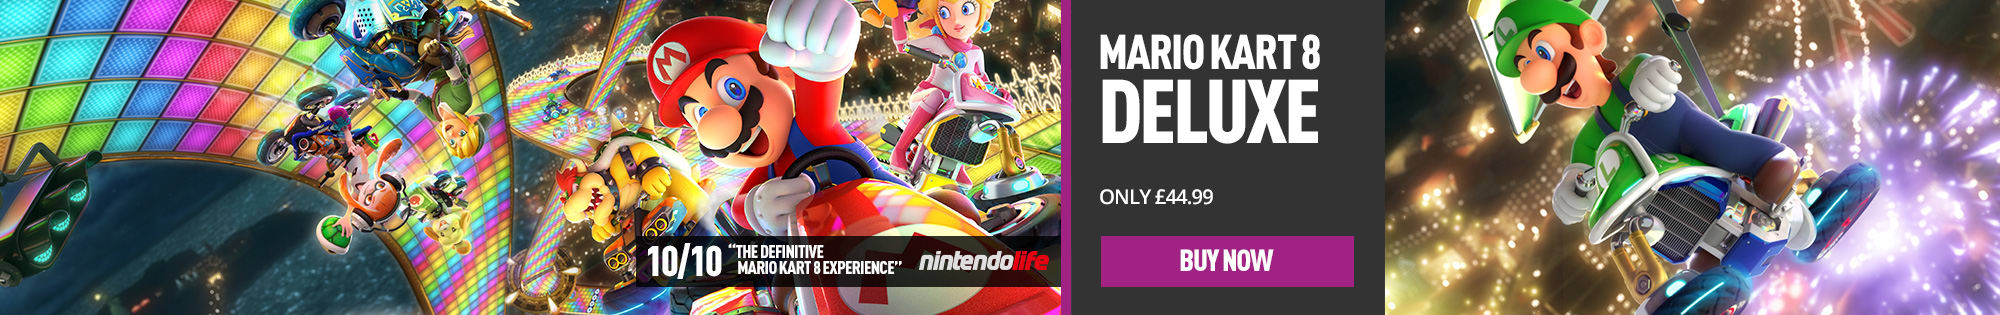 Mario Kart 8 Deluxe for Nintendo Switch - Homepage Banner